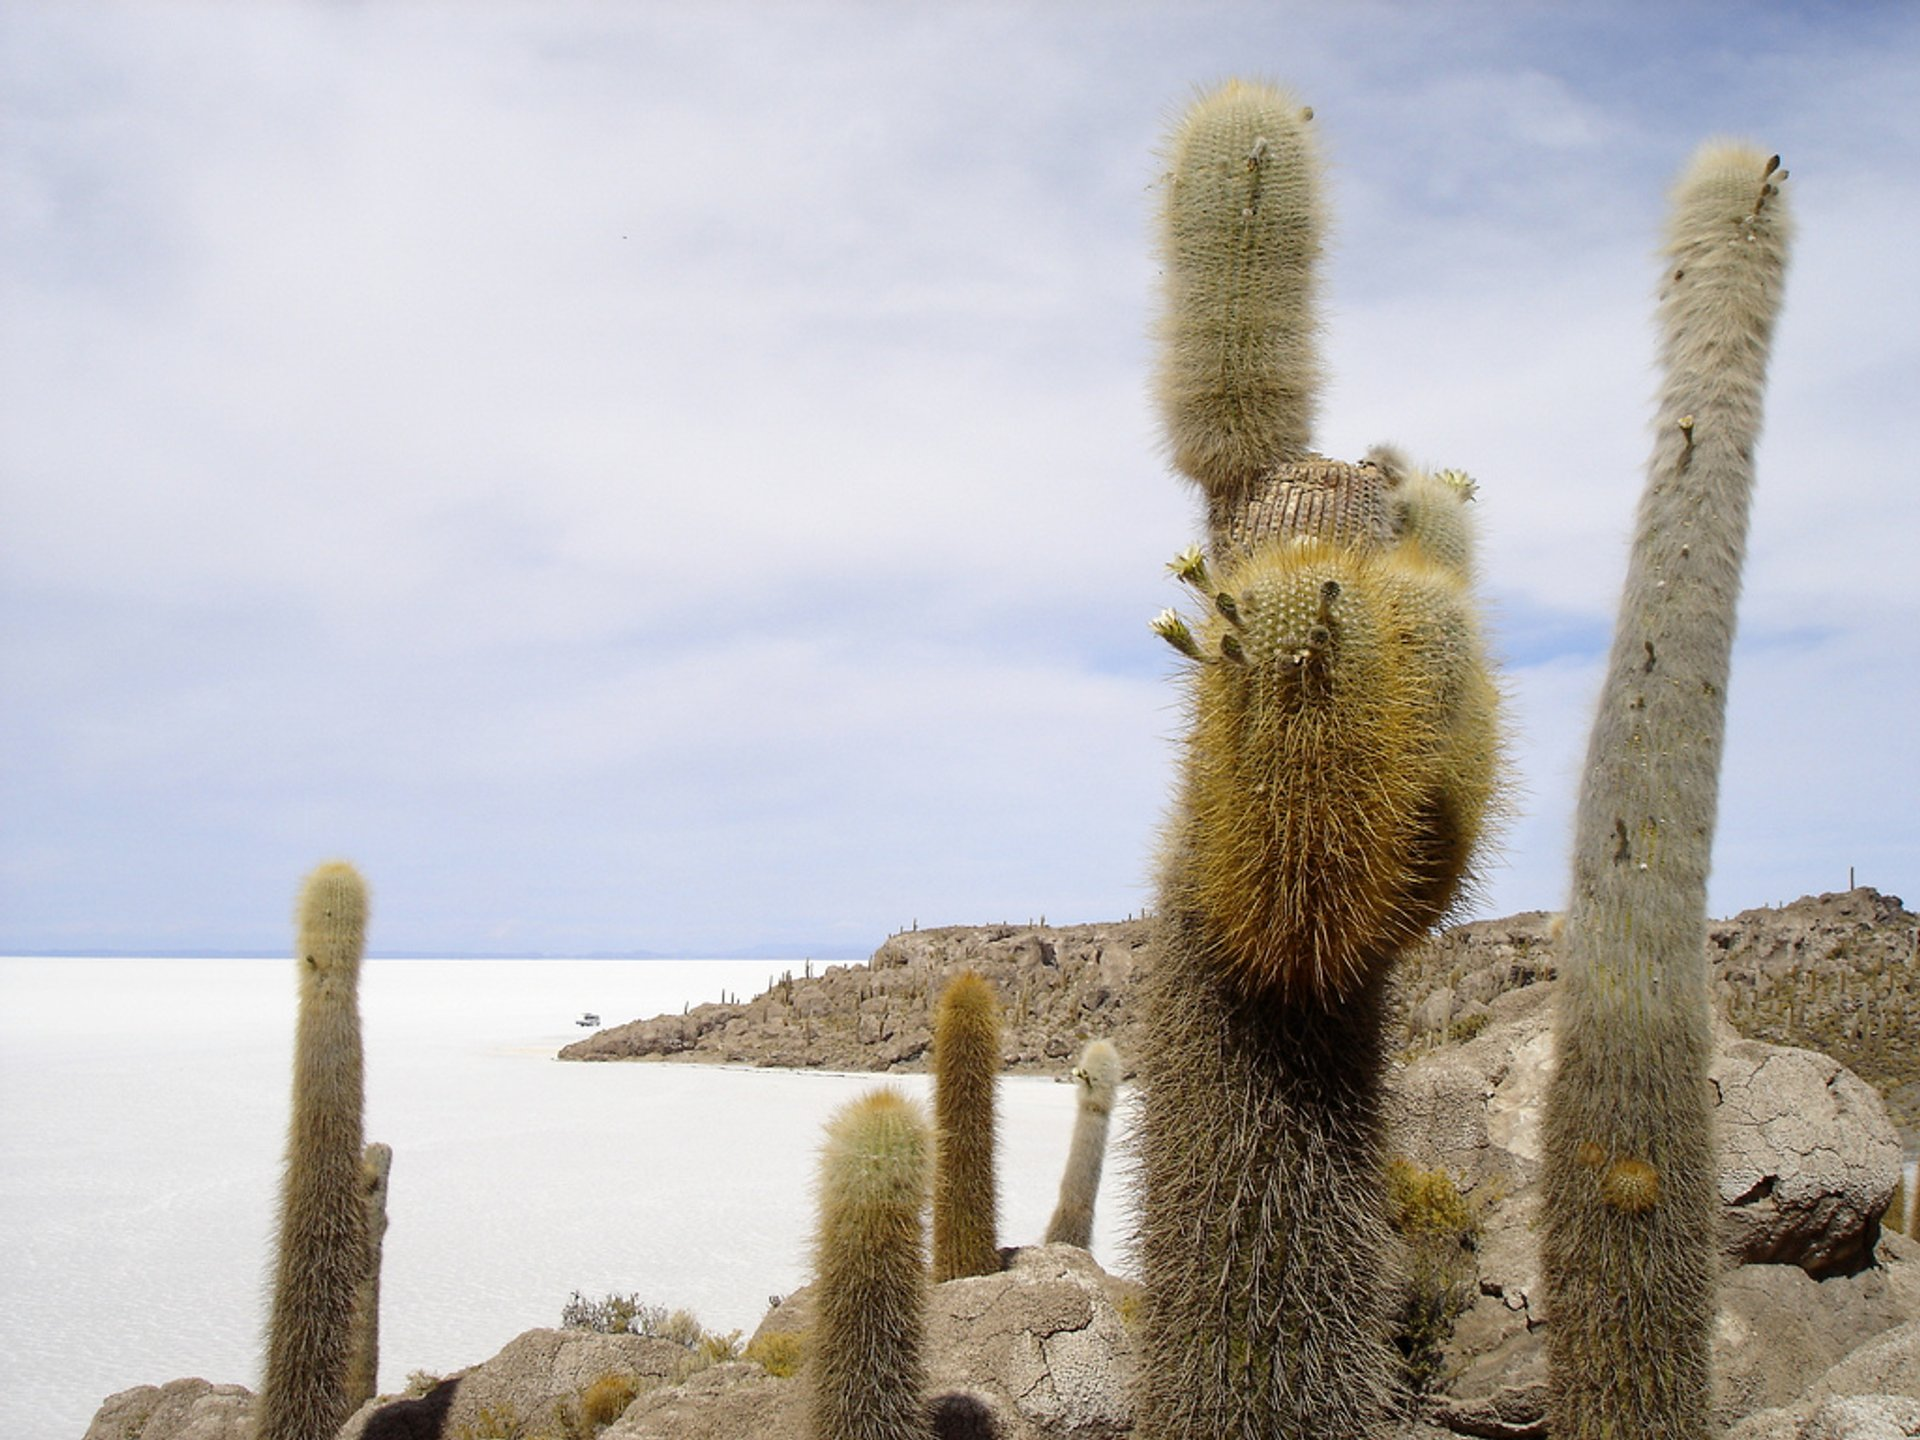 Best time for Blooming Cacti in Bolivia 2019